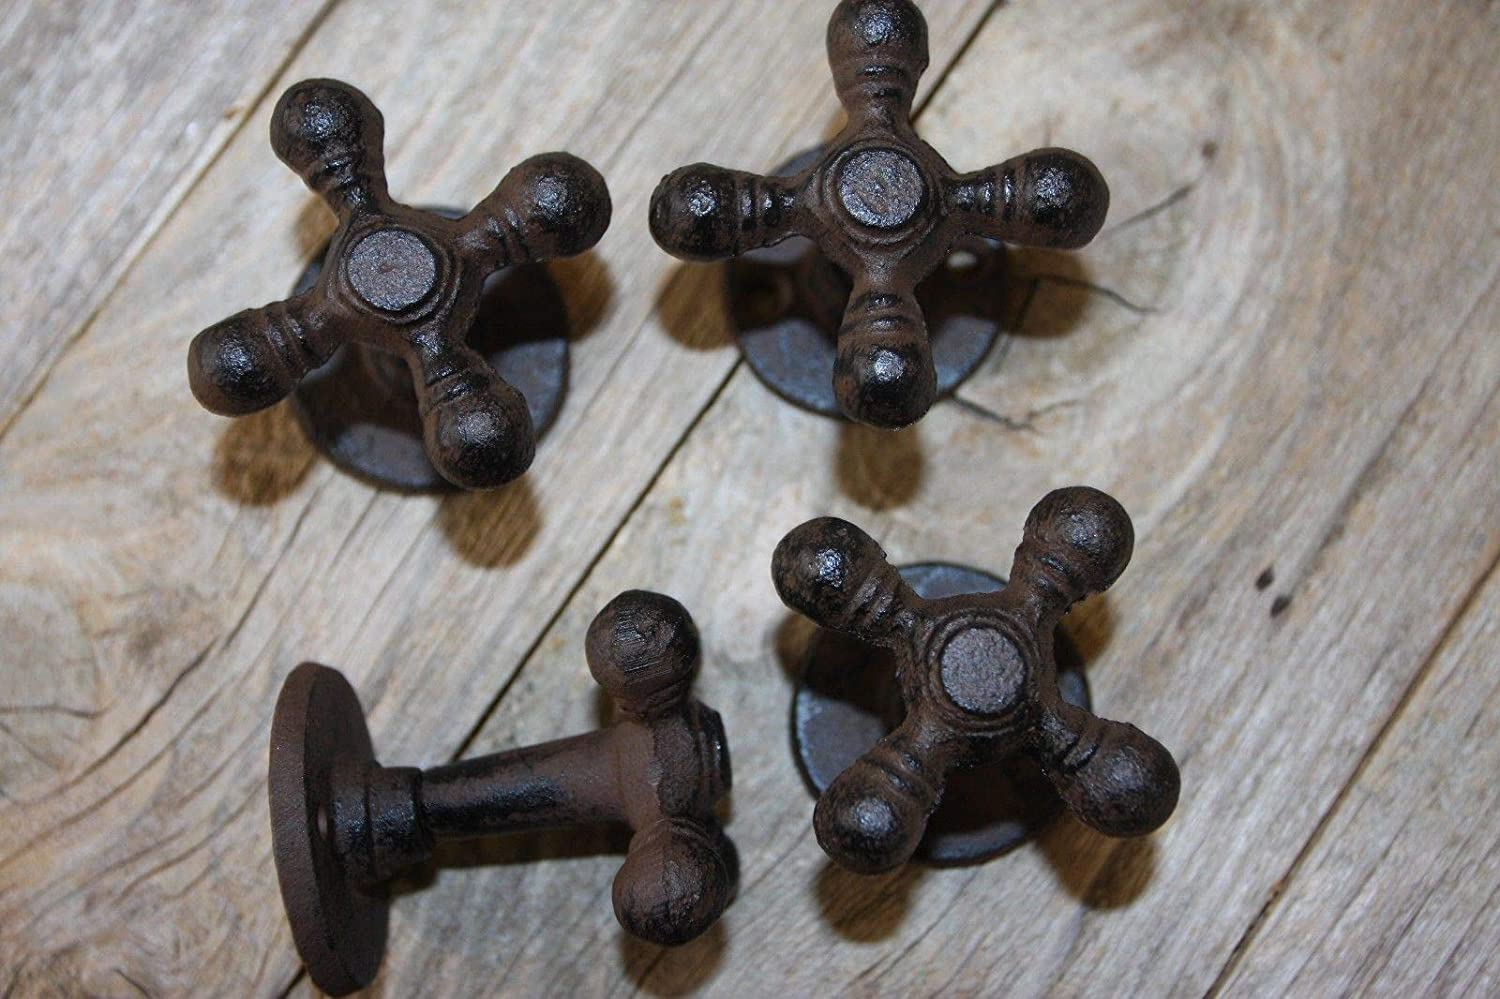 Southern Metal Farmhouse Kitchen Cabinet Knobs Pulls Cast Iron Faucet Handle (4 Pieces) H-89